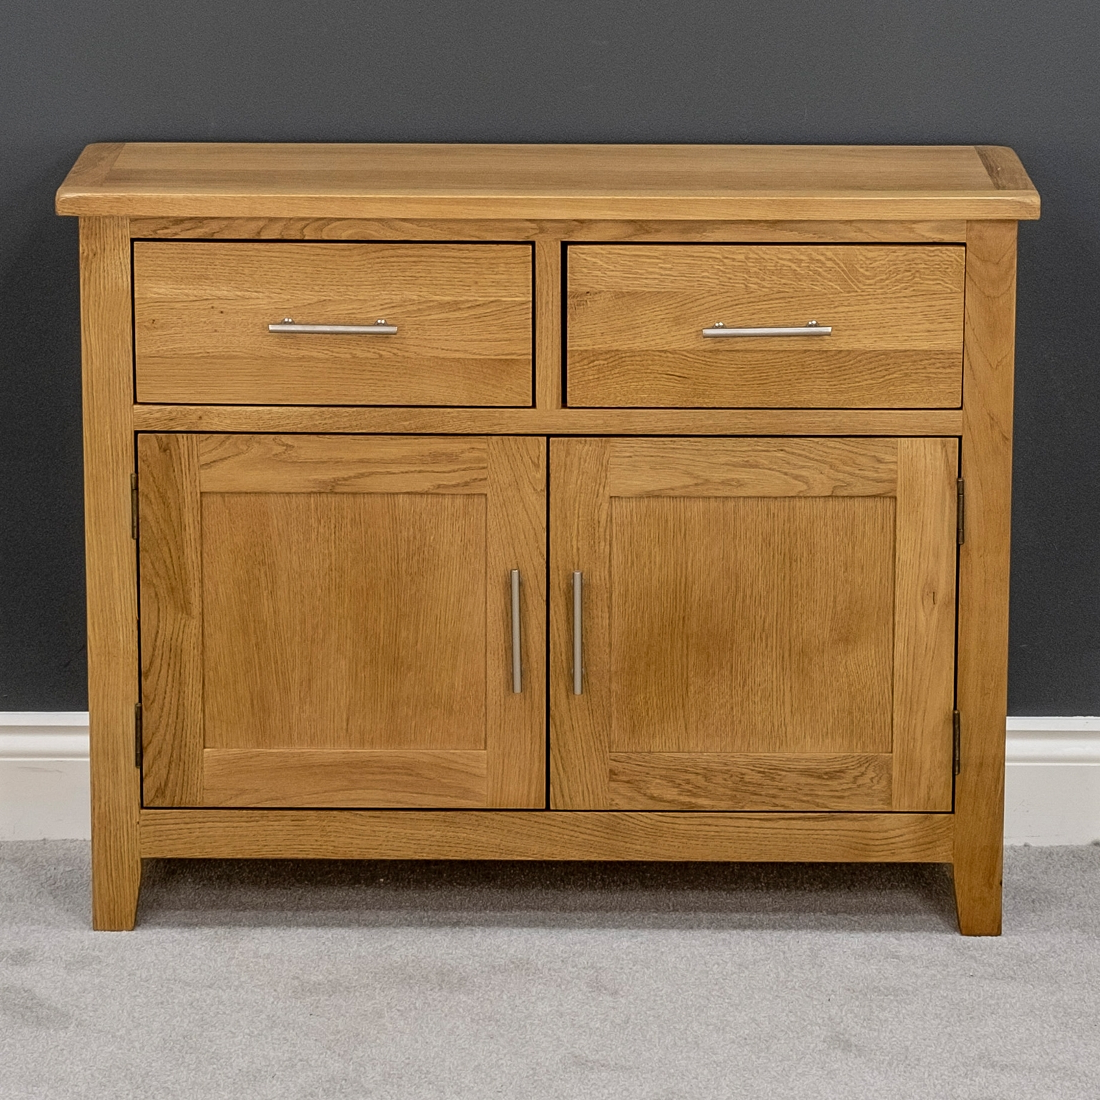 Most Current Details About Nebraska Oak Sideboard / Small Solid Wood 2 Door Storage  Cabinet & Cupboard With Natural Oak Wood 2 Door Sideboards (Gallery 4 of 20)